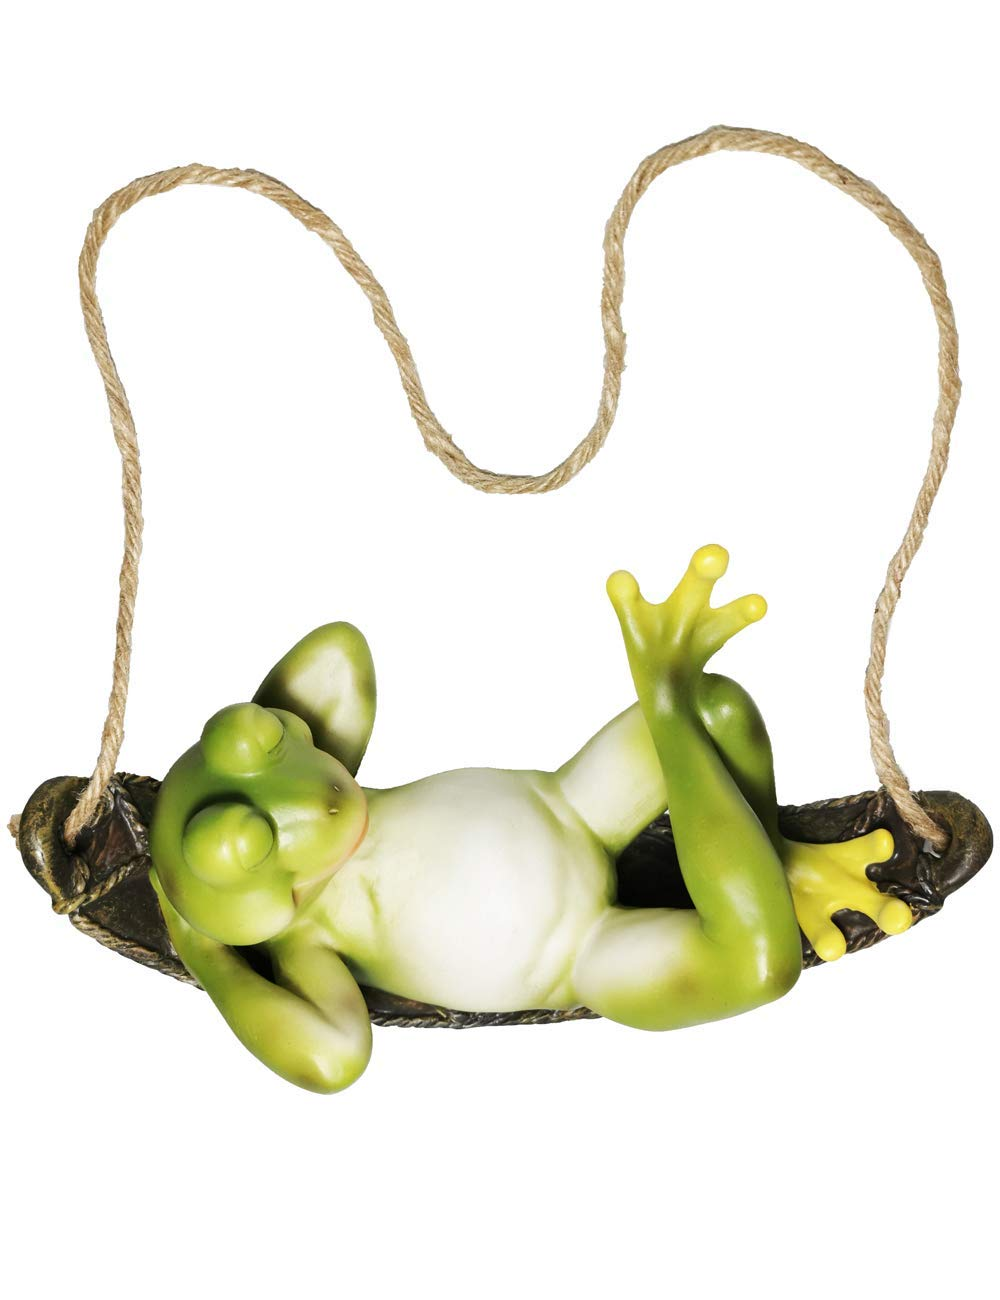 Muse Design Hanging Green Frog 10 Inch Garden Statues Yard Art Resin Decorations Outdoor Garden Decor